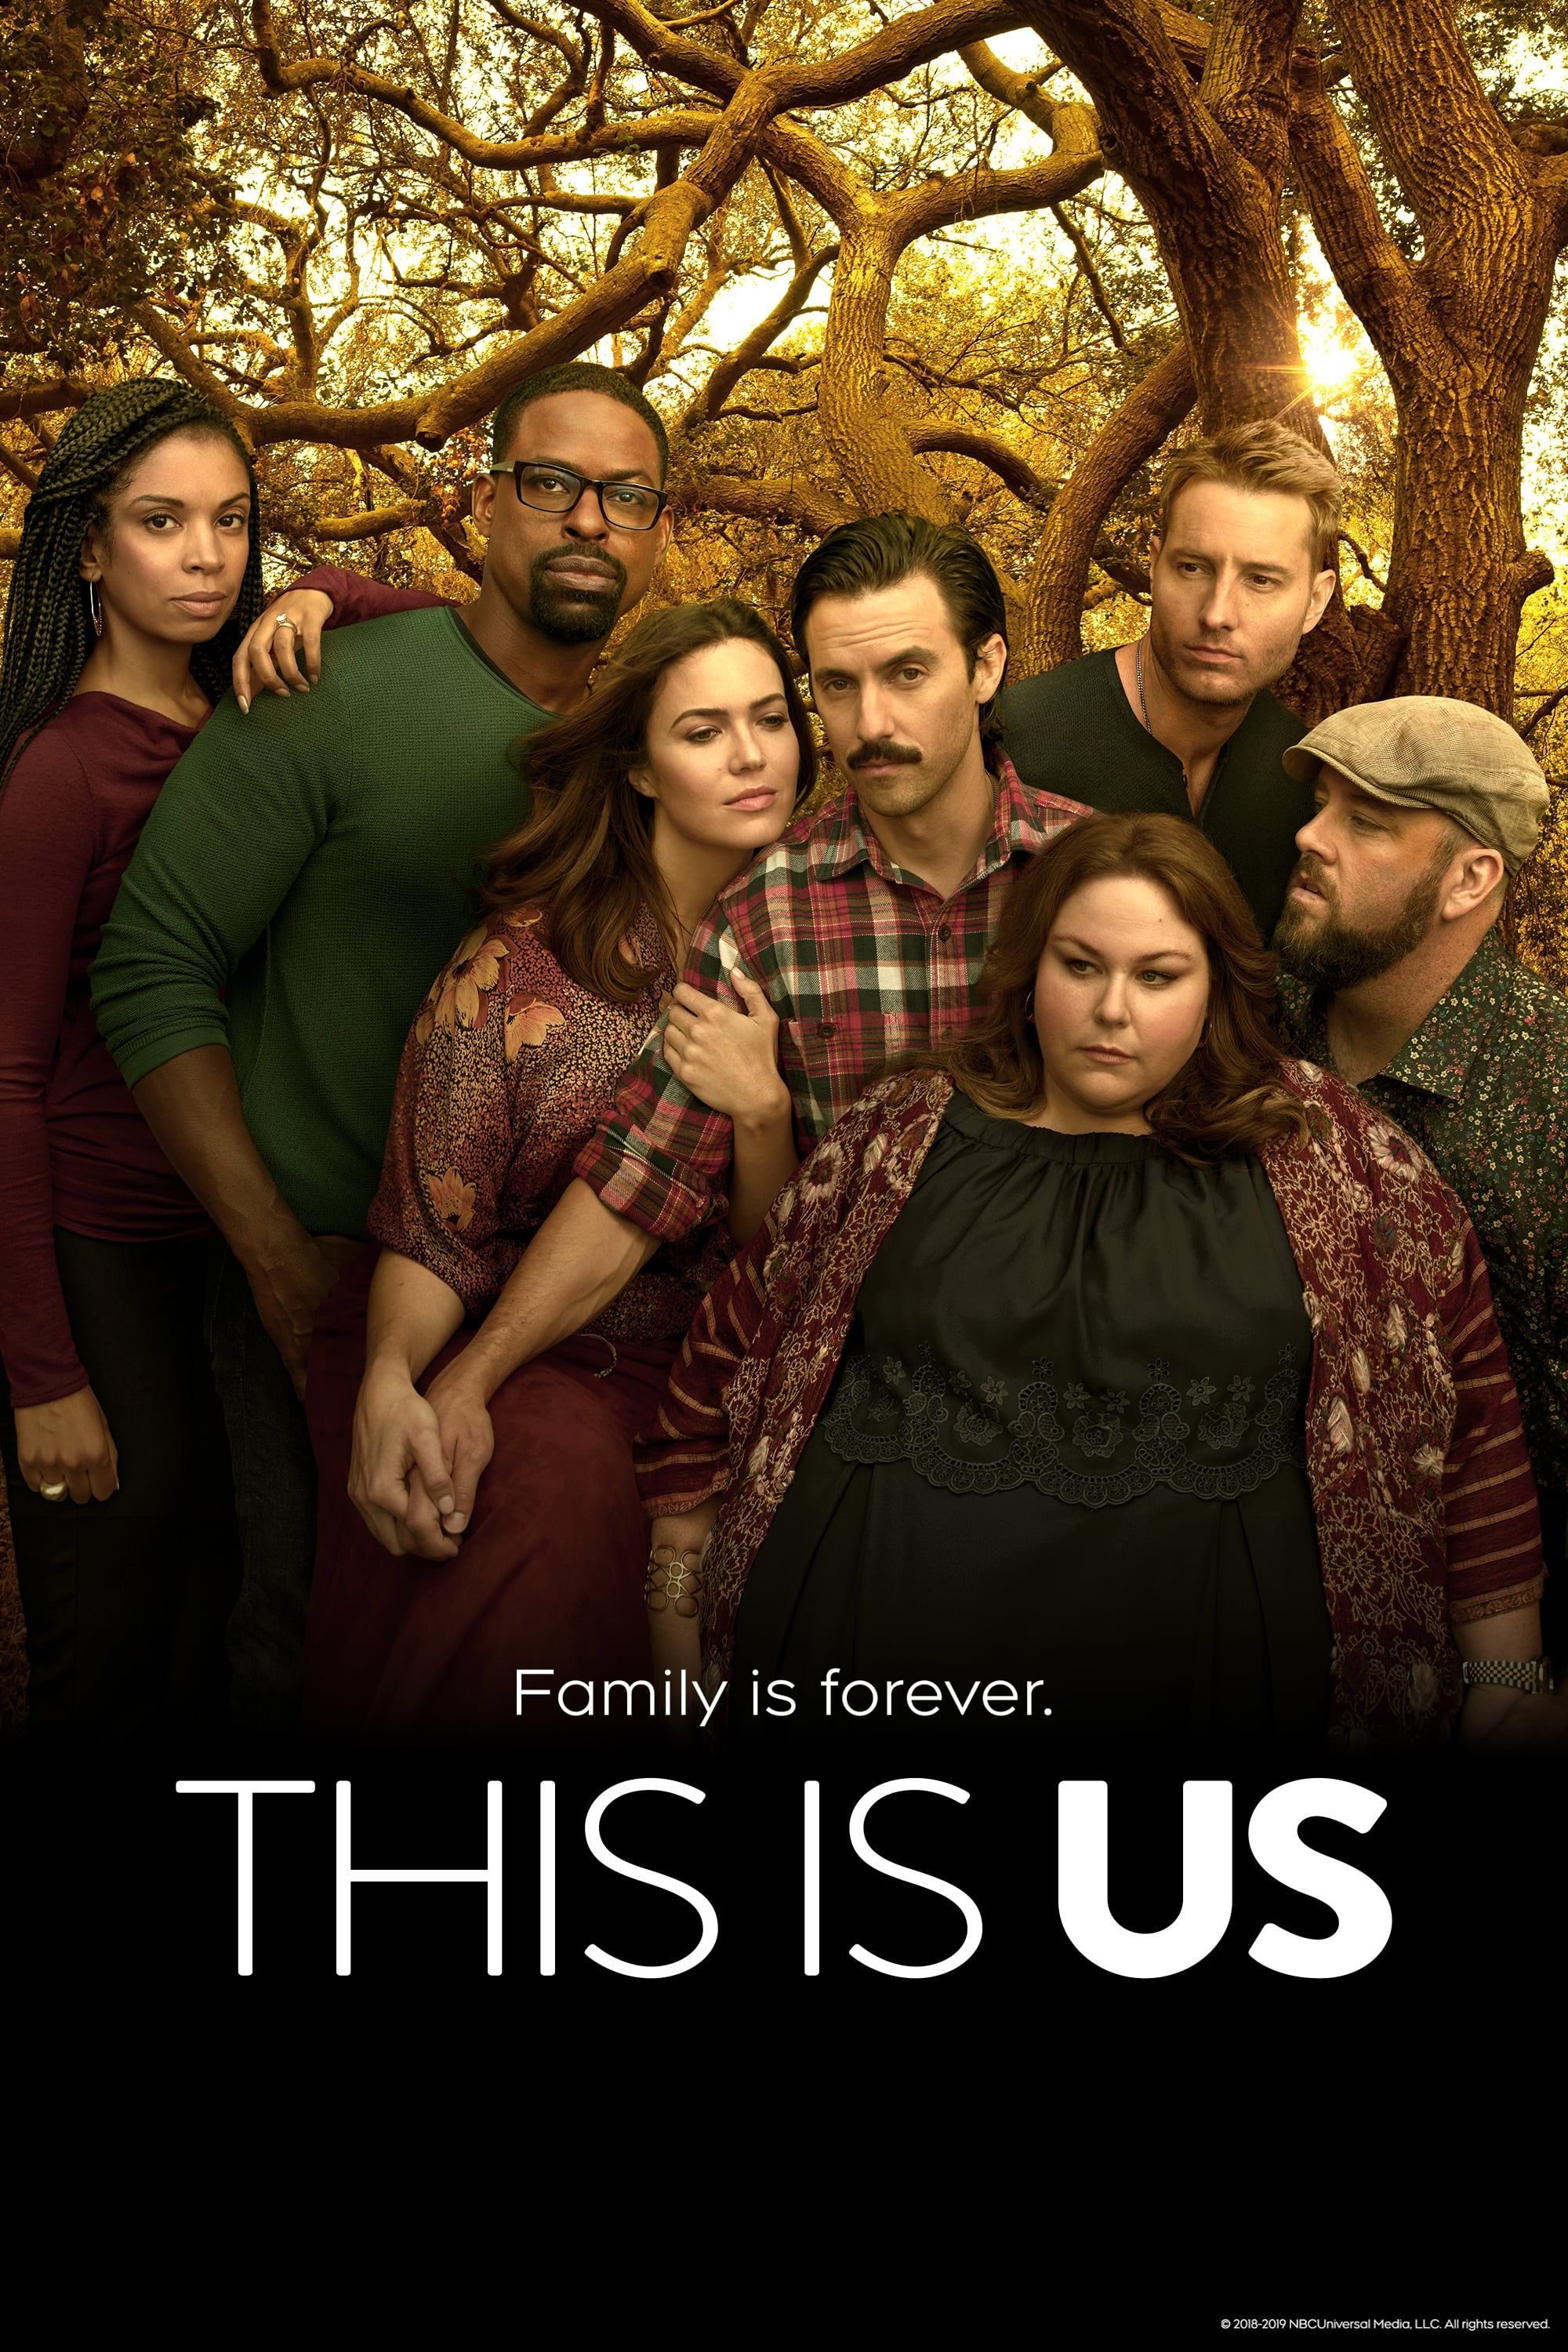 Watch This Is Us Episode Online This Is Us This Is Us Serie Favorite Tv Shows